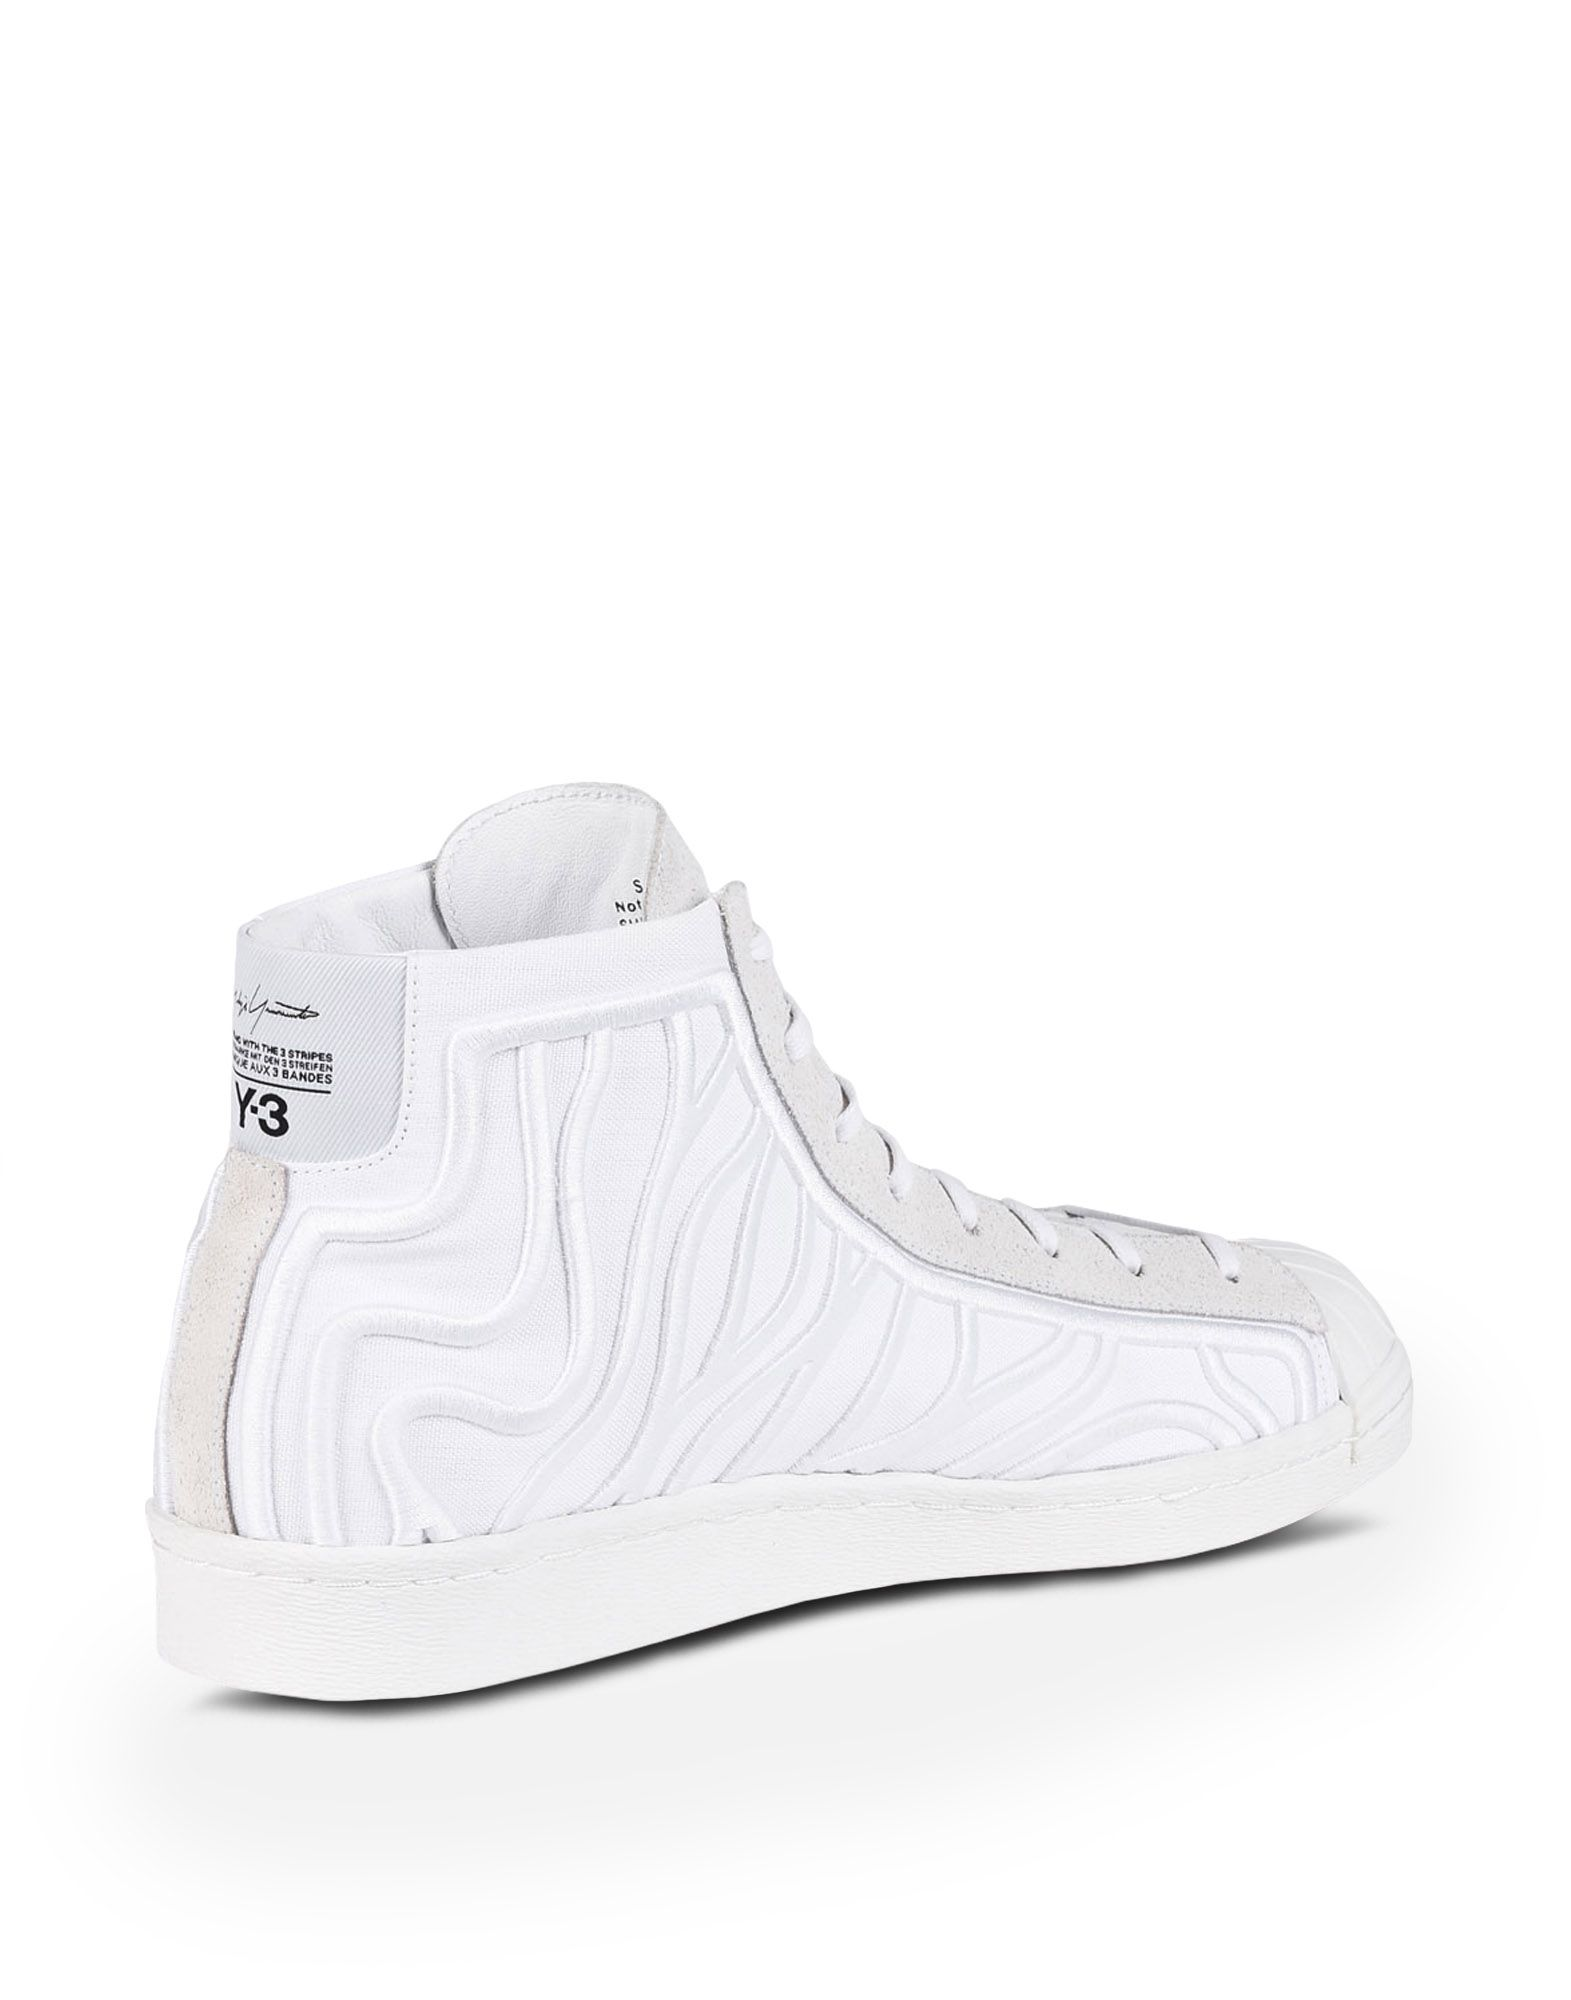 Off-White White Shishu Super High-top Sneakers